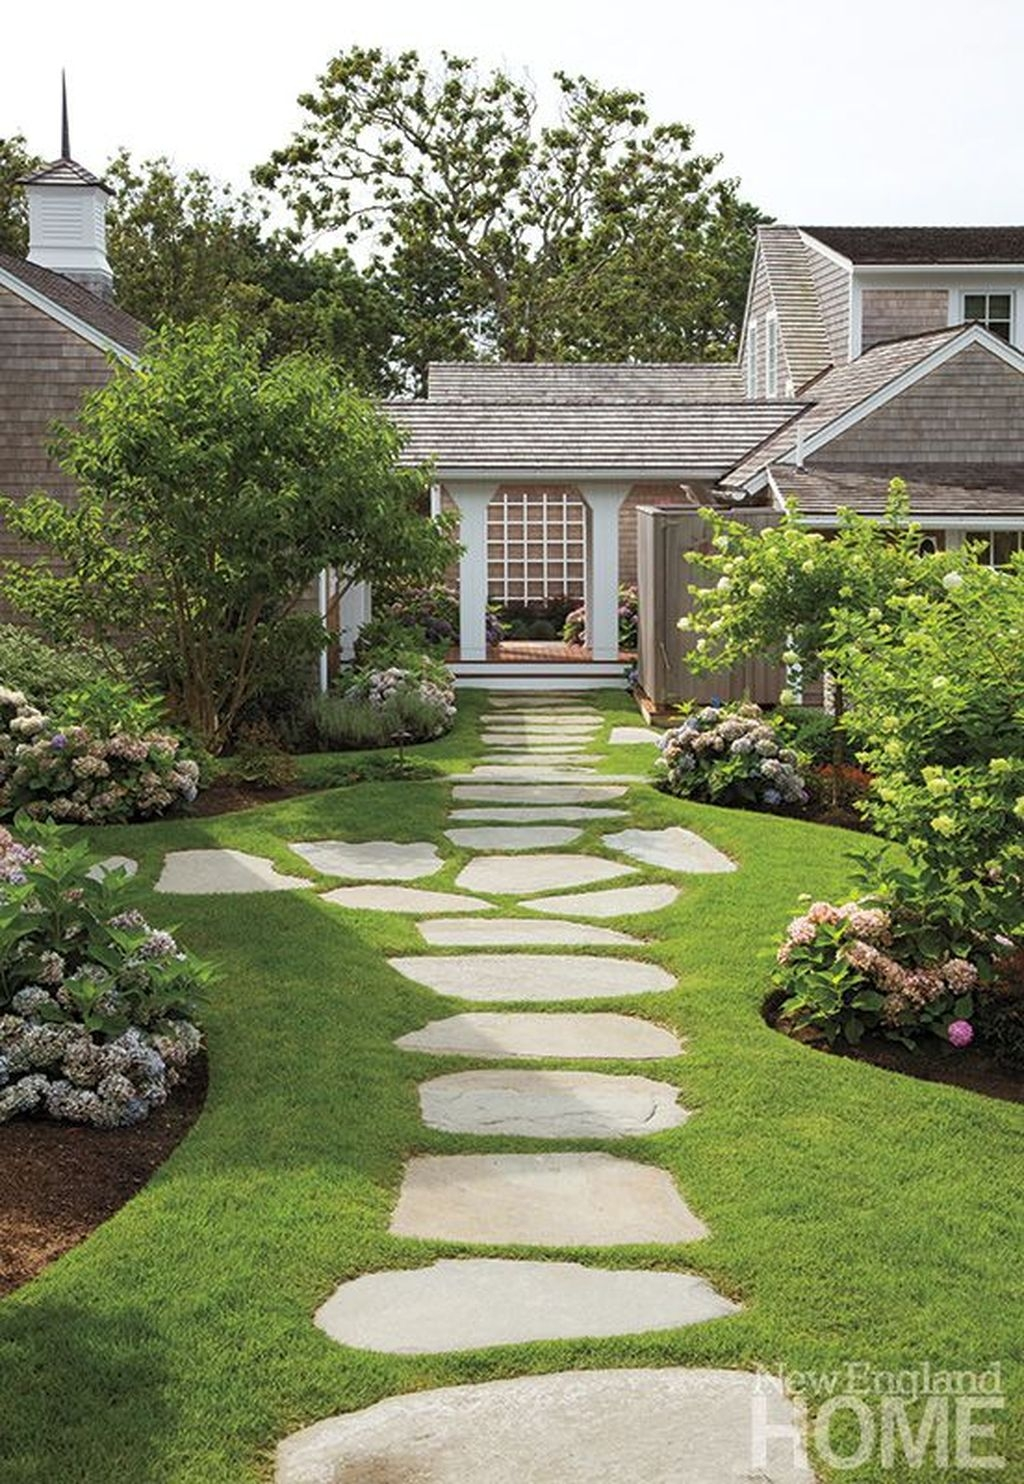 Inspiring Stepping Stone Pathway Decor Ideas For Your Garden10